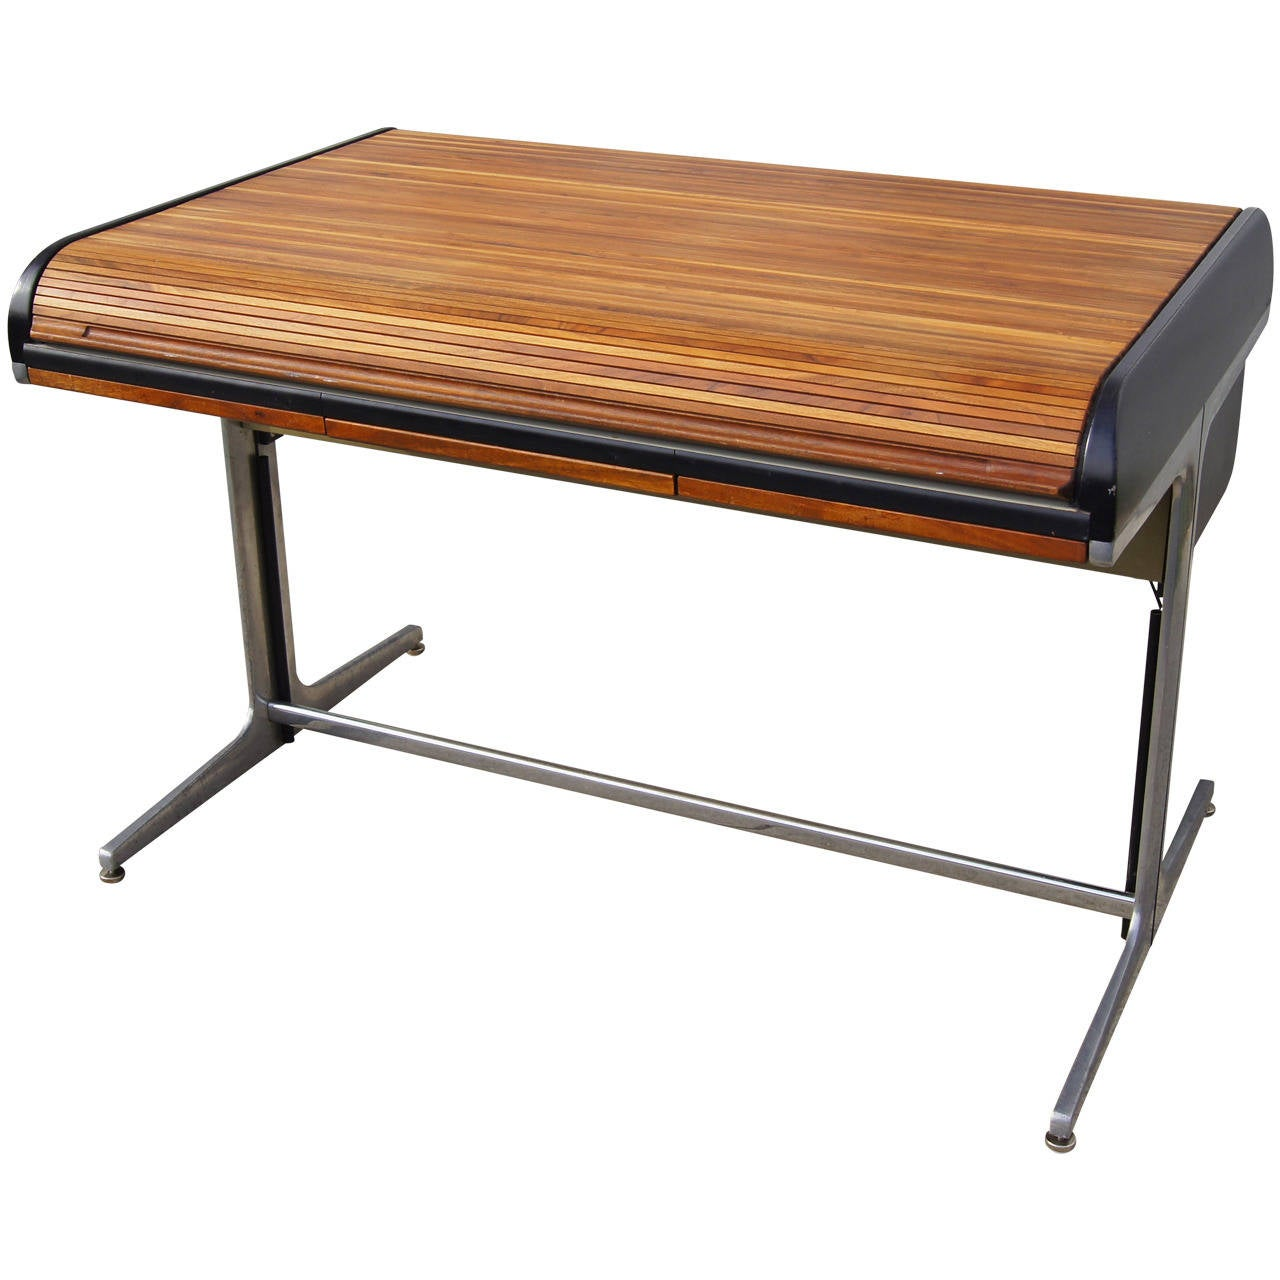 Walnut Rolltop Desk by George Nelson for Herman Miller at